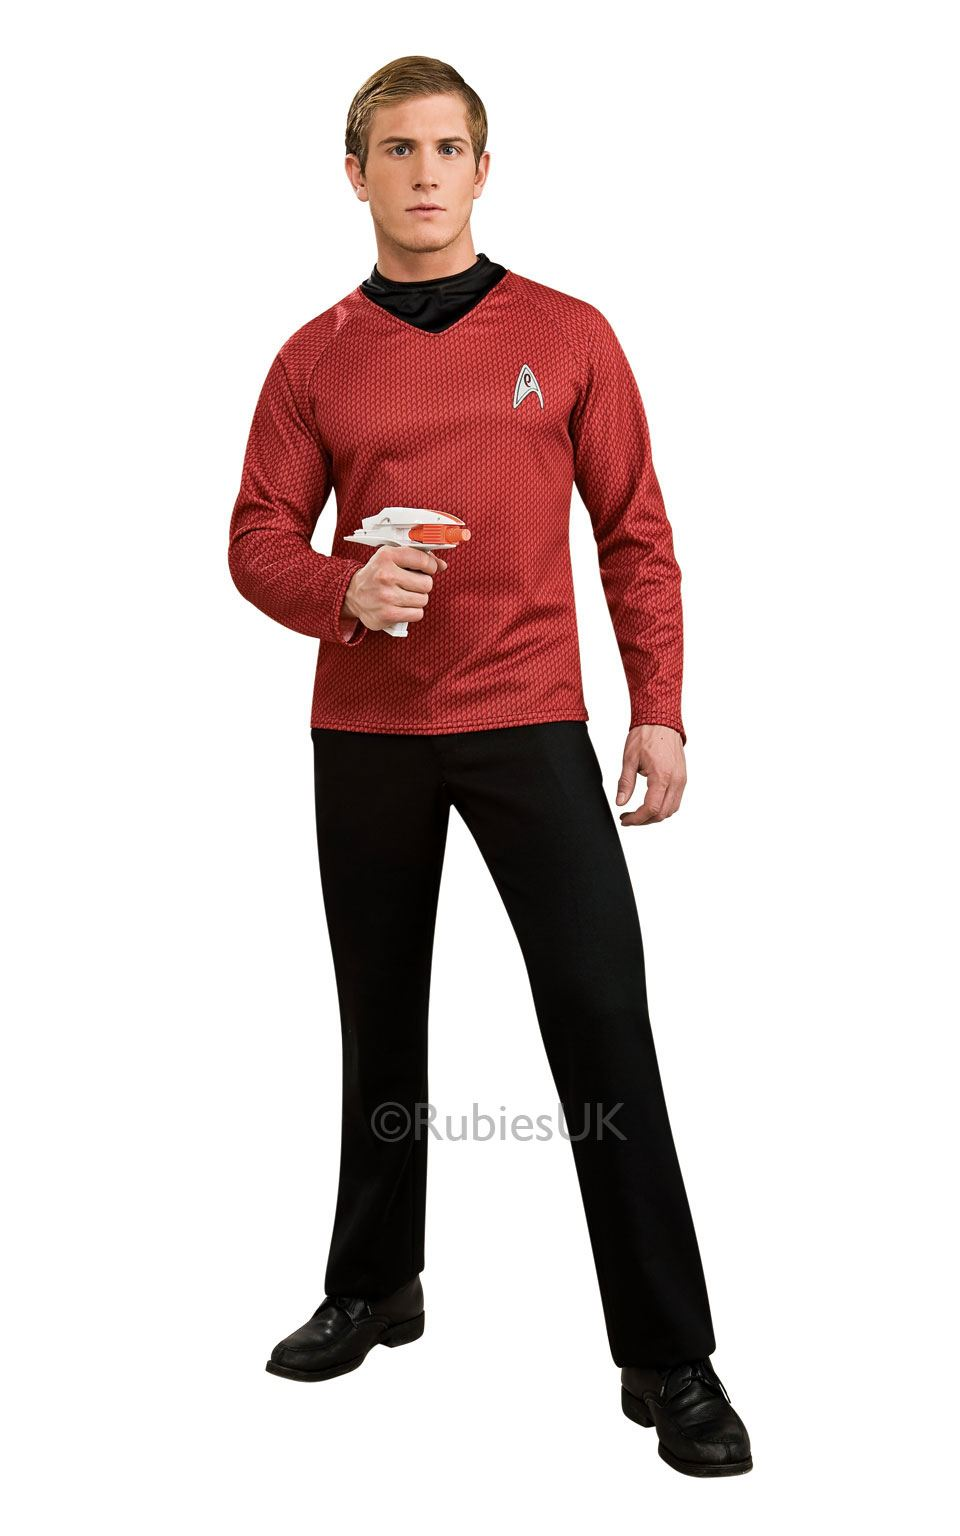 Adult-Mens-Deluxe-Star-Trek-Shirts-Movie-Fancy-  sc 1 st  eBay & Adult Mens Deluxe Star Trek Shirts Movie Fancy Dress Costume Adult ...